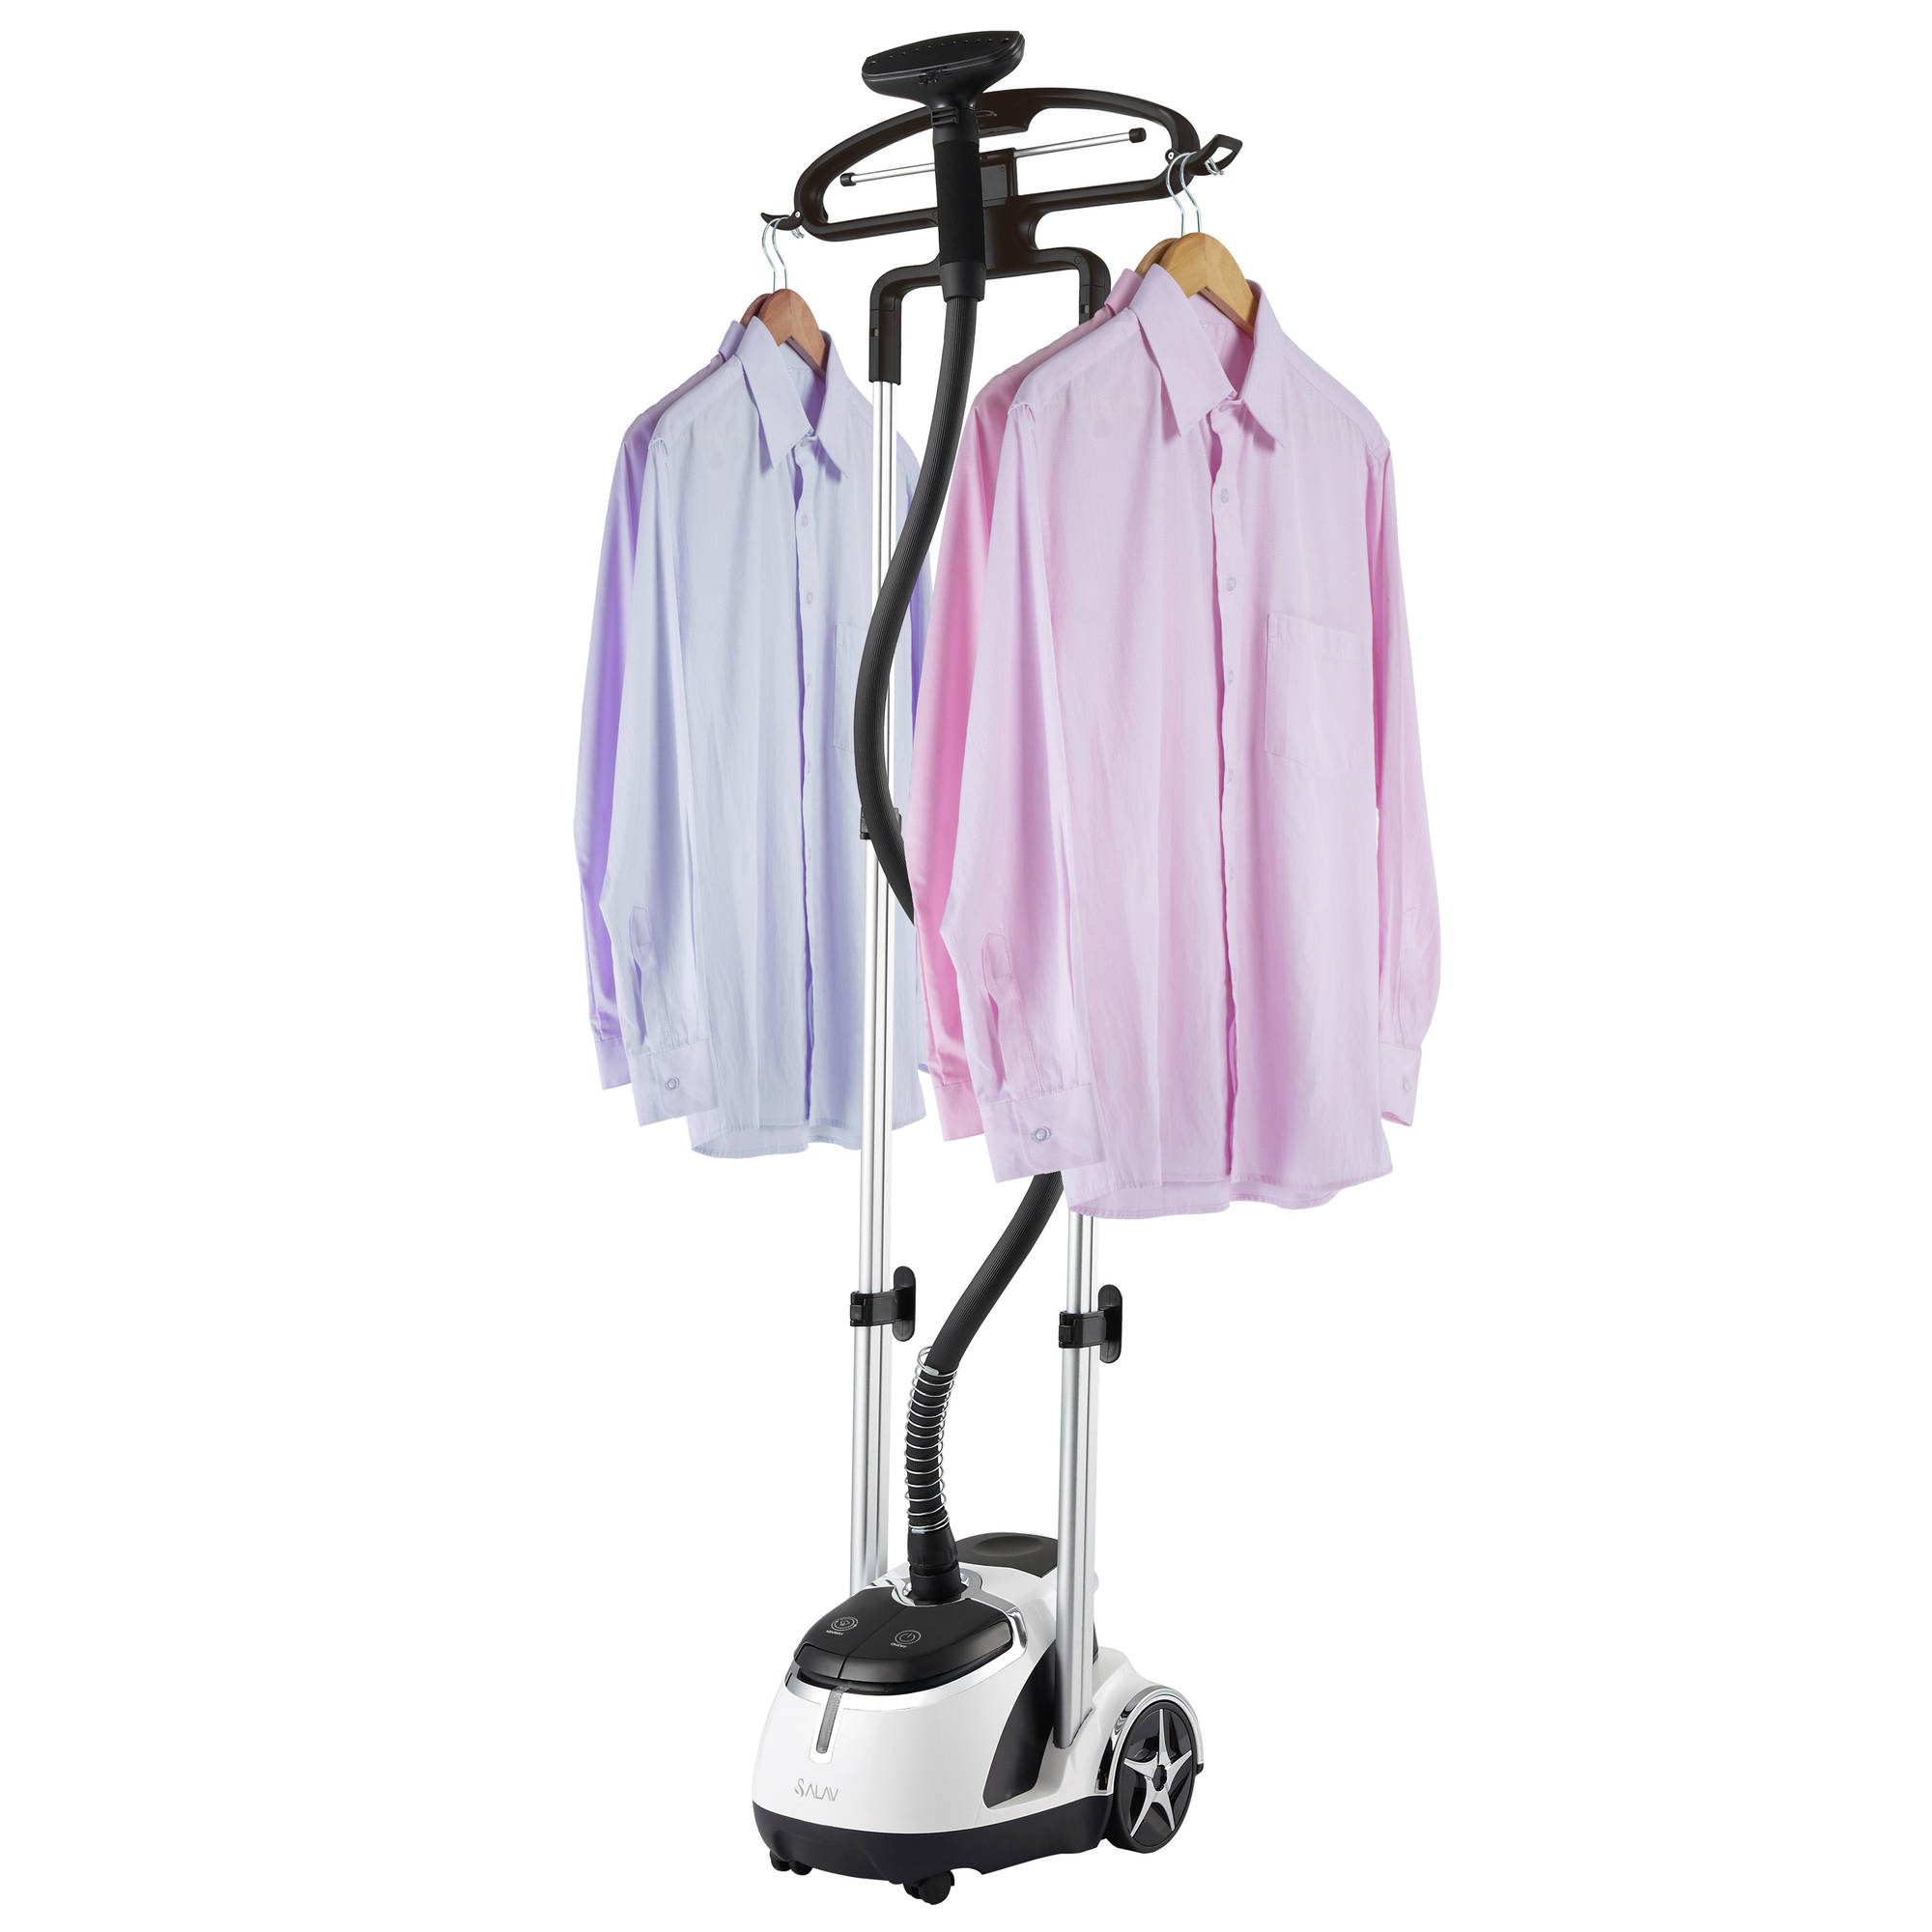 SALAV GS45-DJ Dual Bar Garment Steamer w  Foot Pedal Controls, Black by Salav